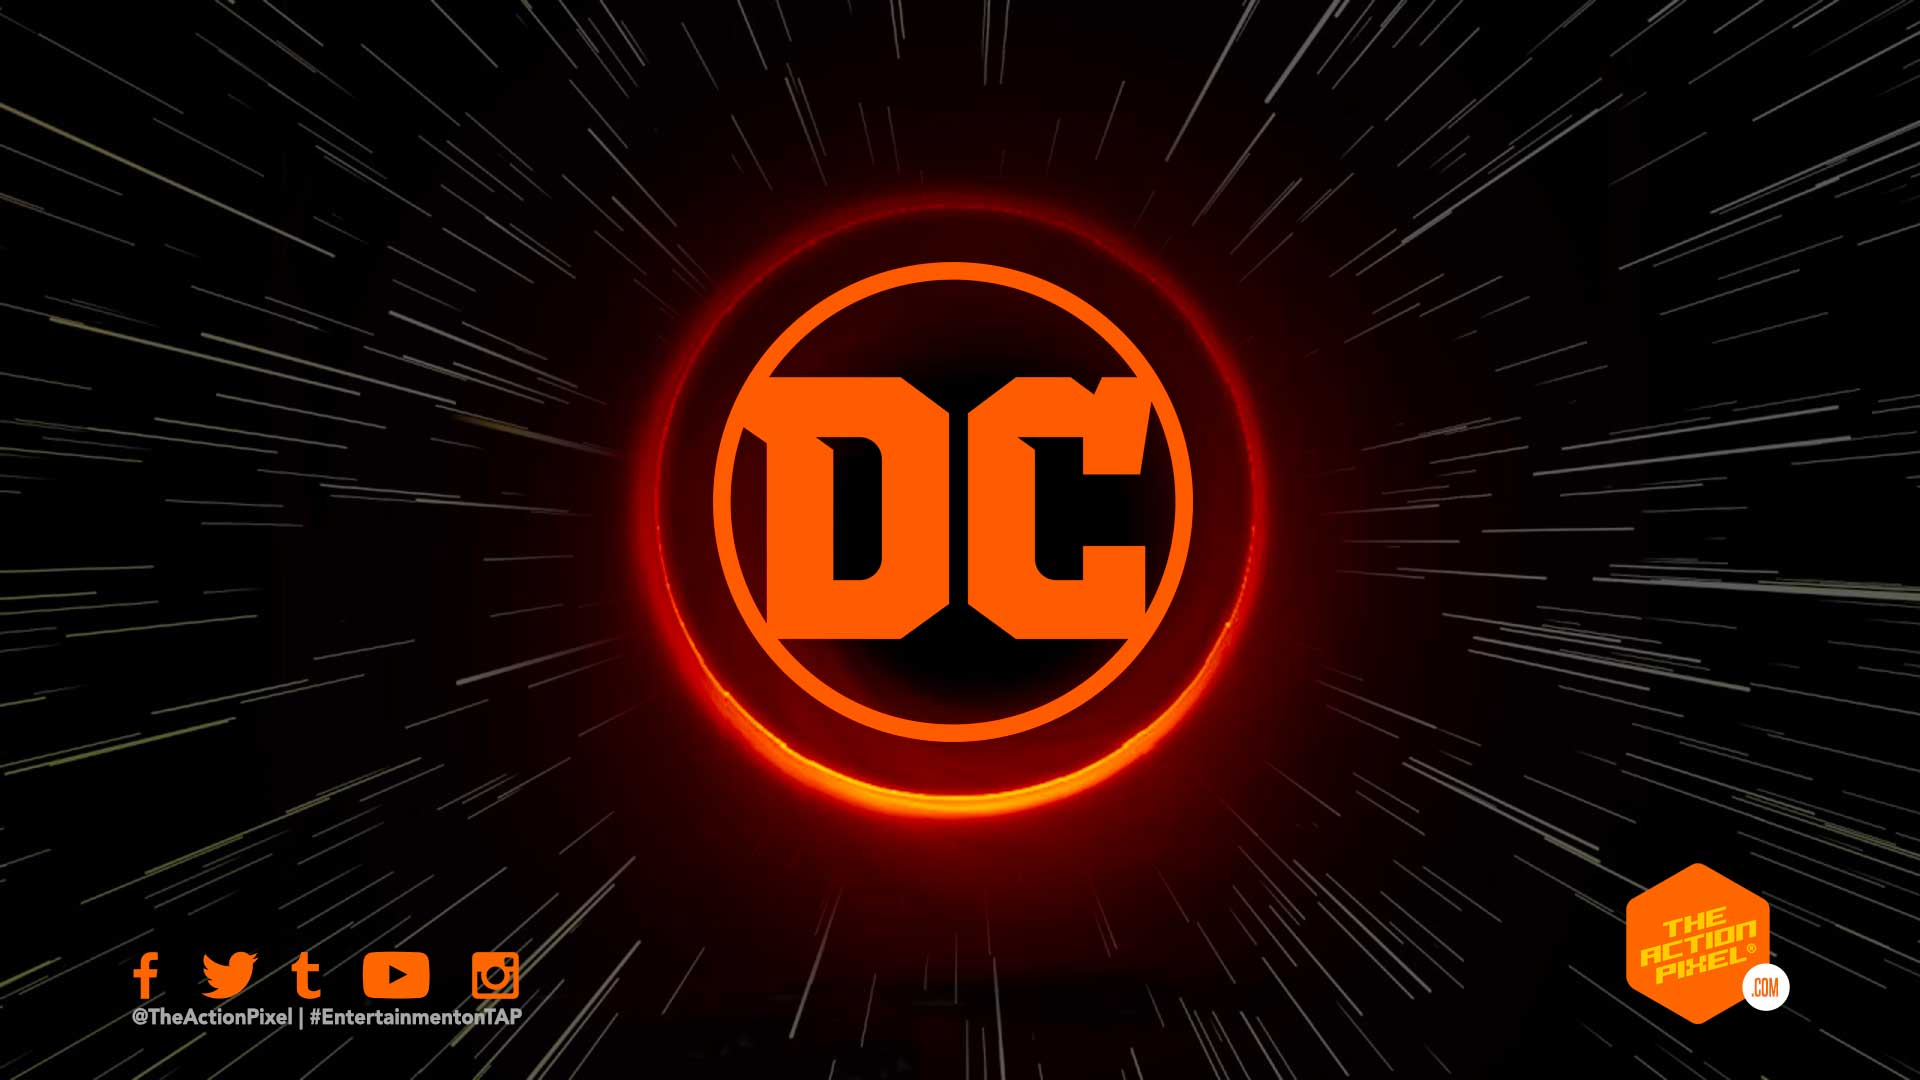 dc comics, dc multiverse, dceu, dc extended universe, the action pixel, entertainment on tap,dc movies